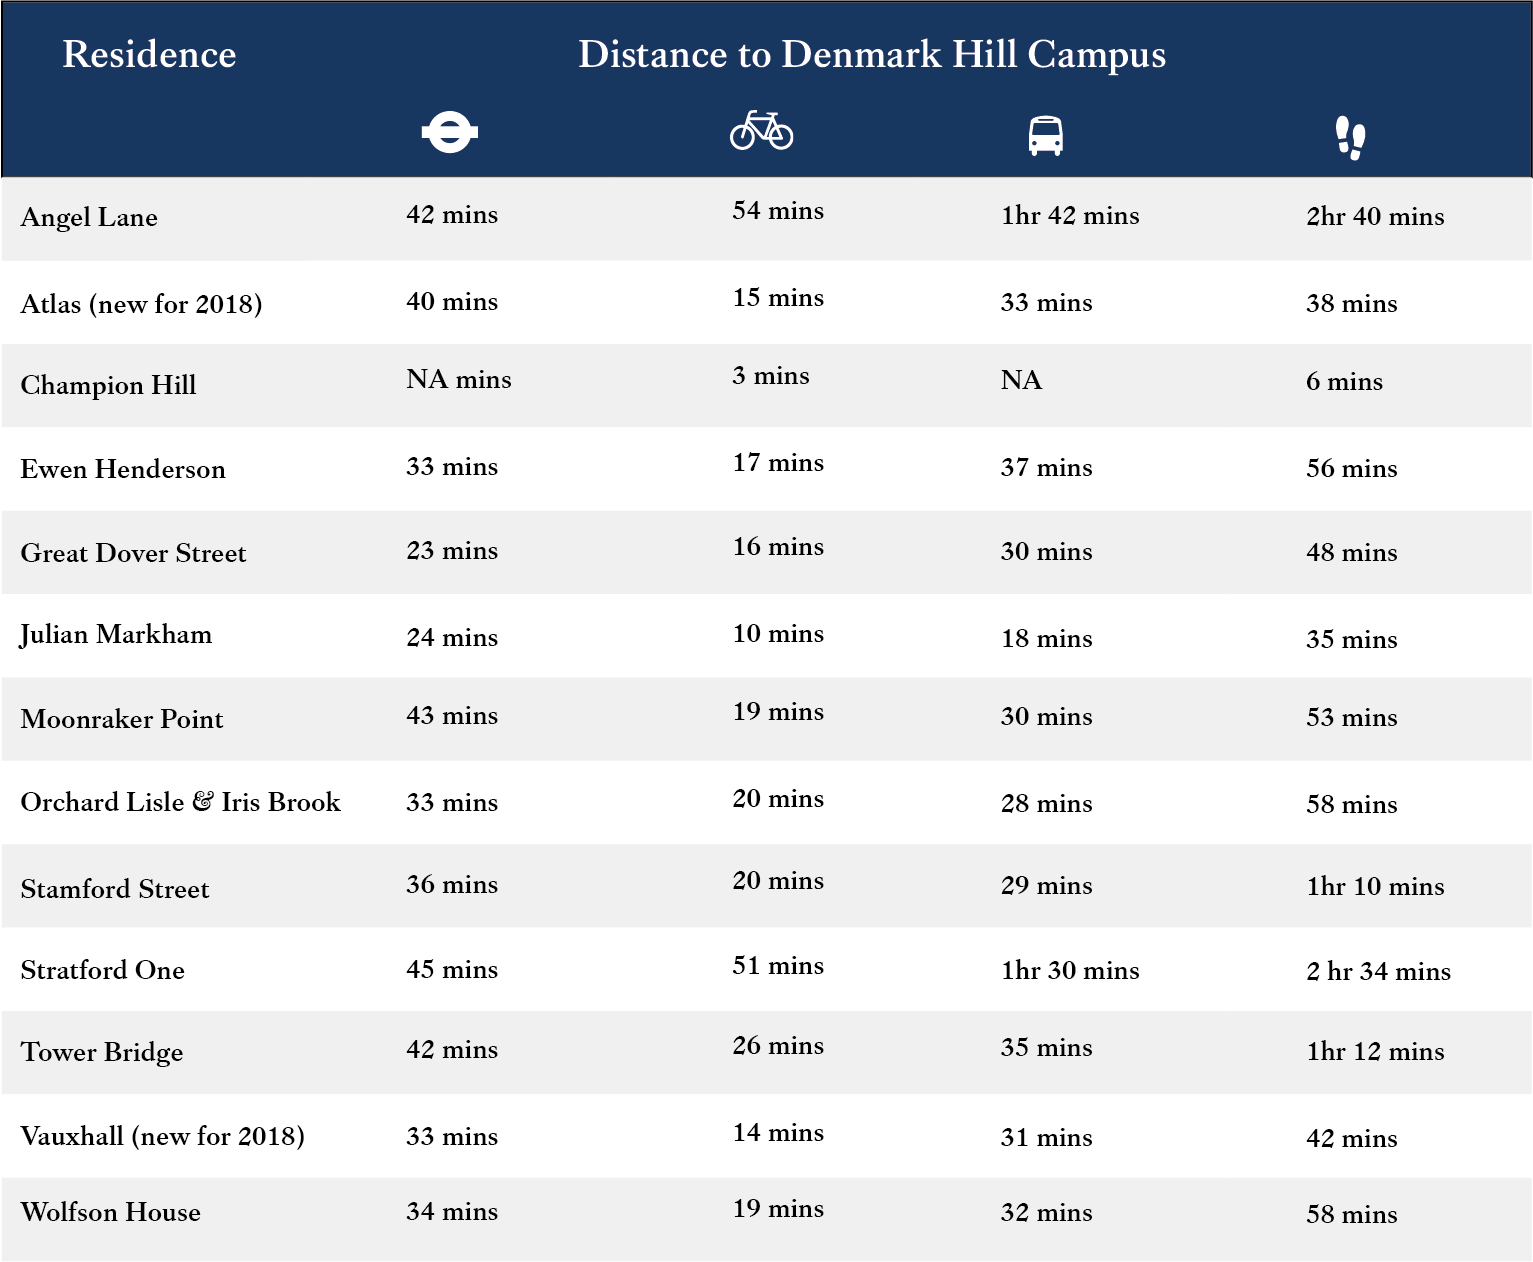 Distance to Denmark Hill Campus_1@2x